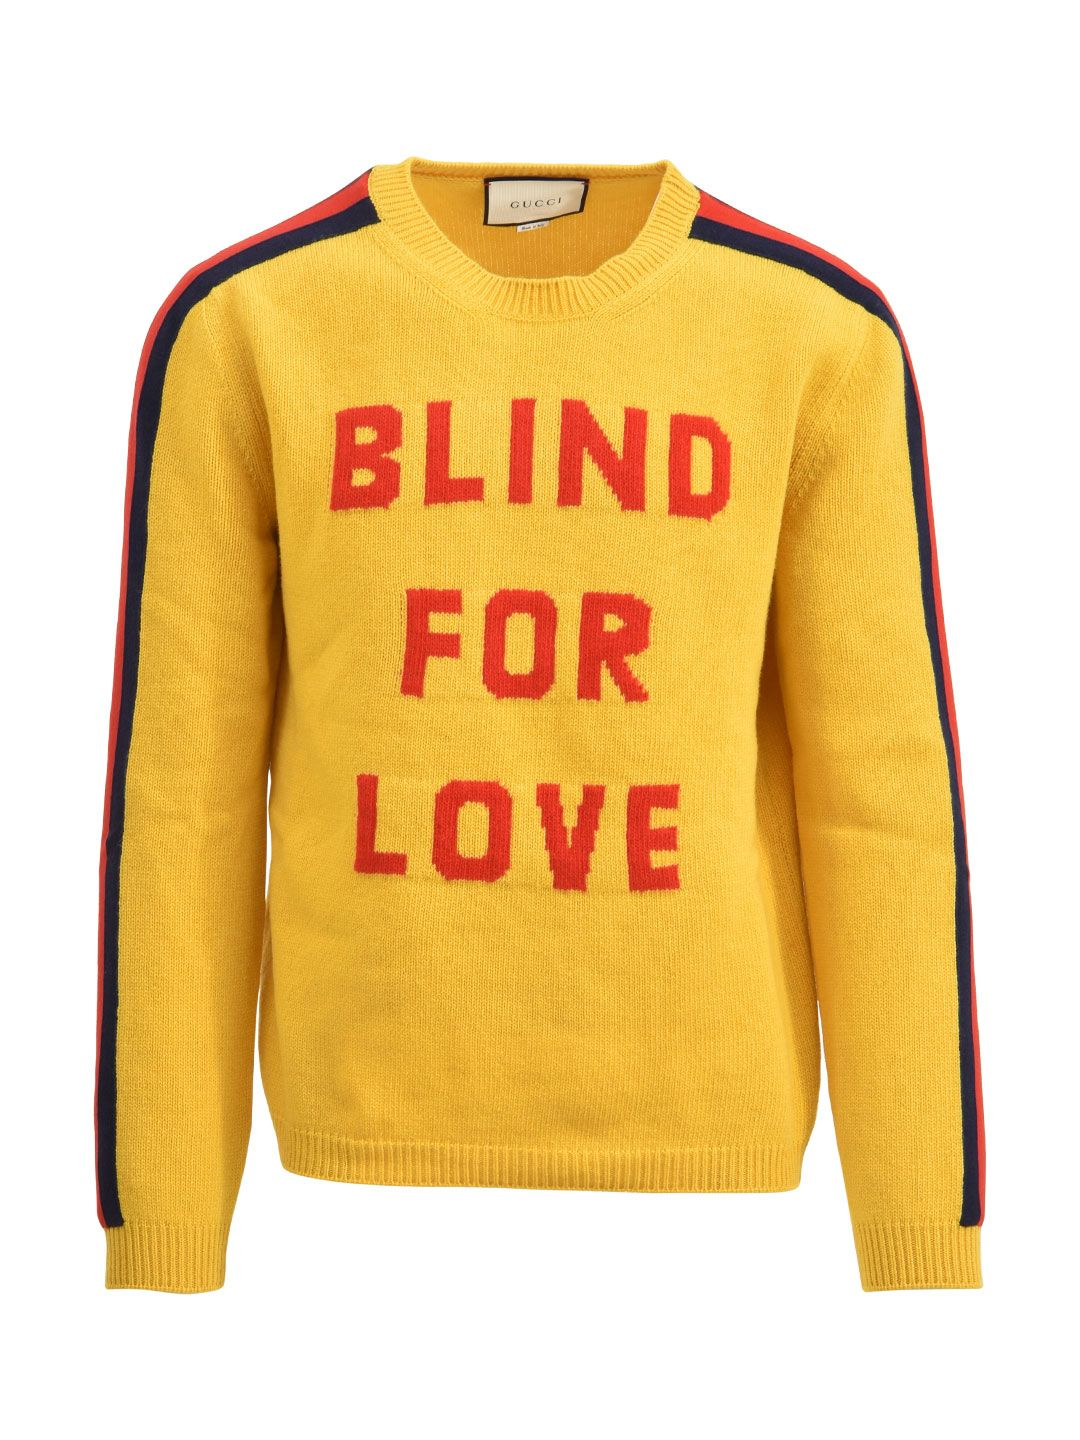 Gucci Blind For Love Sweater